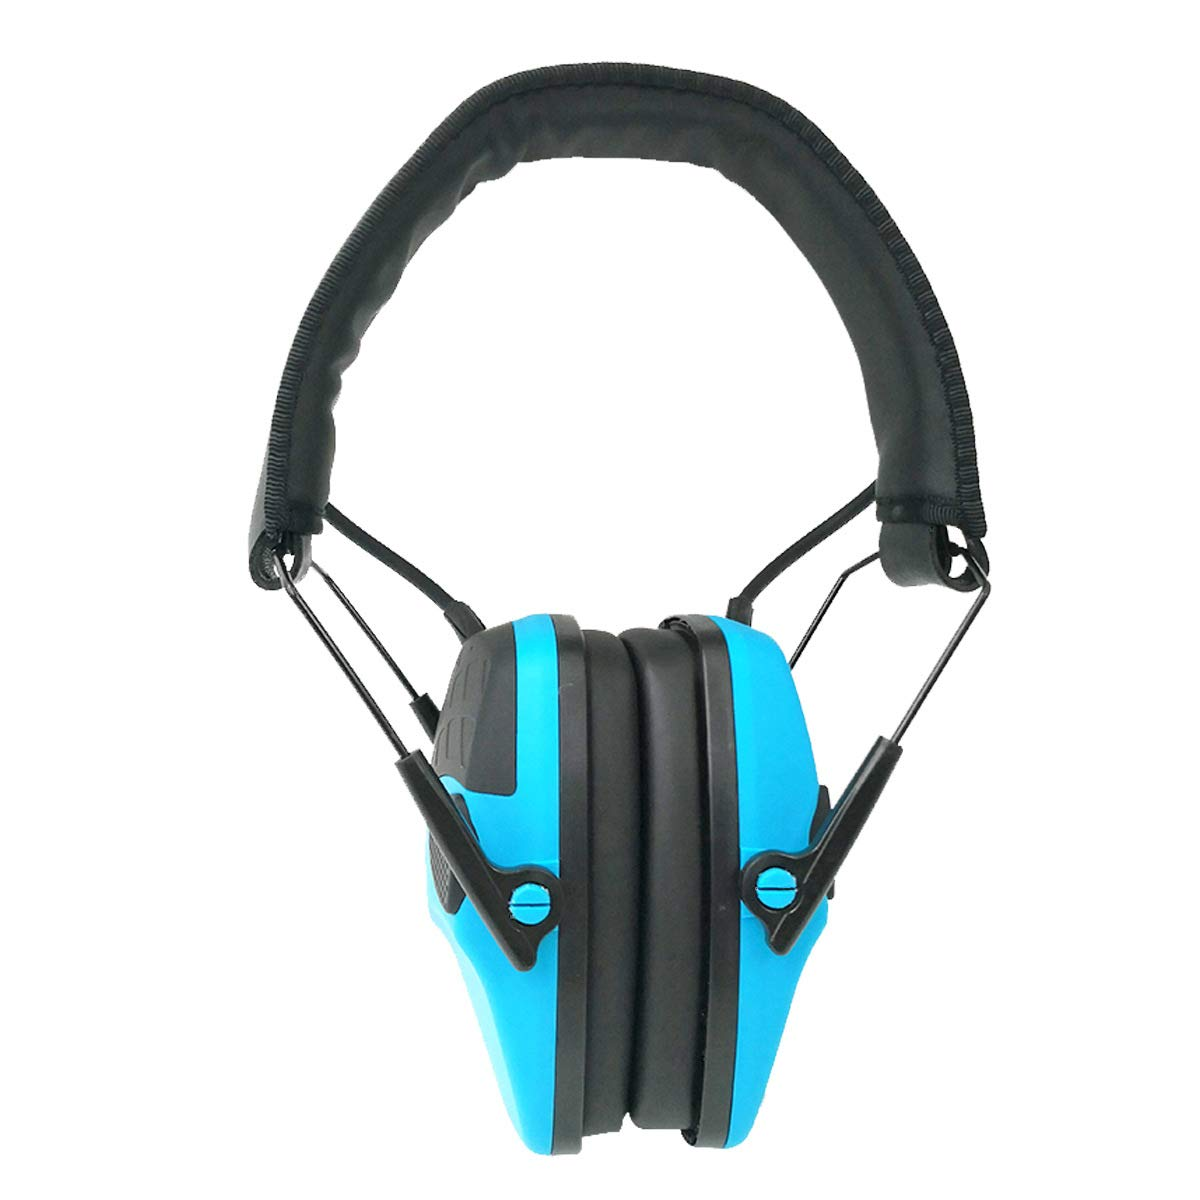 Soundproof earmuffs electronic pickup sound insulation noise reduction shooting tactical headphones